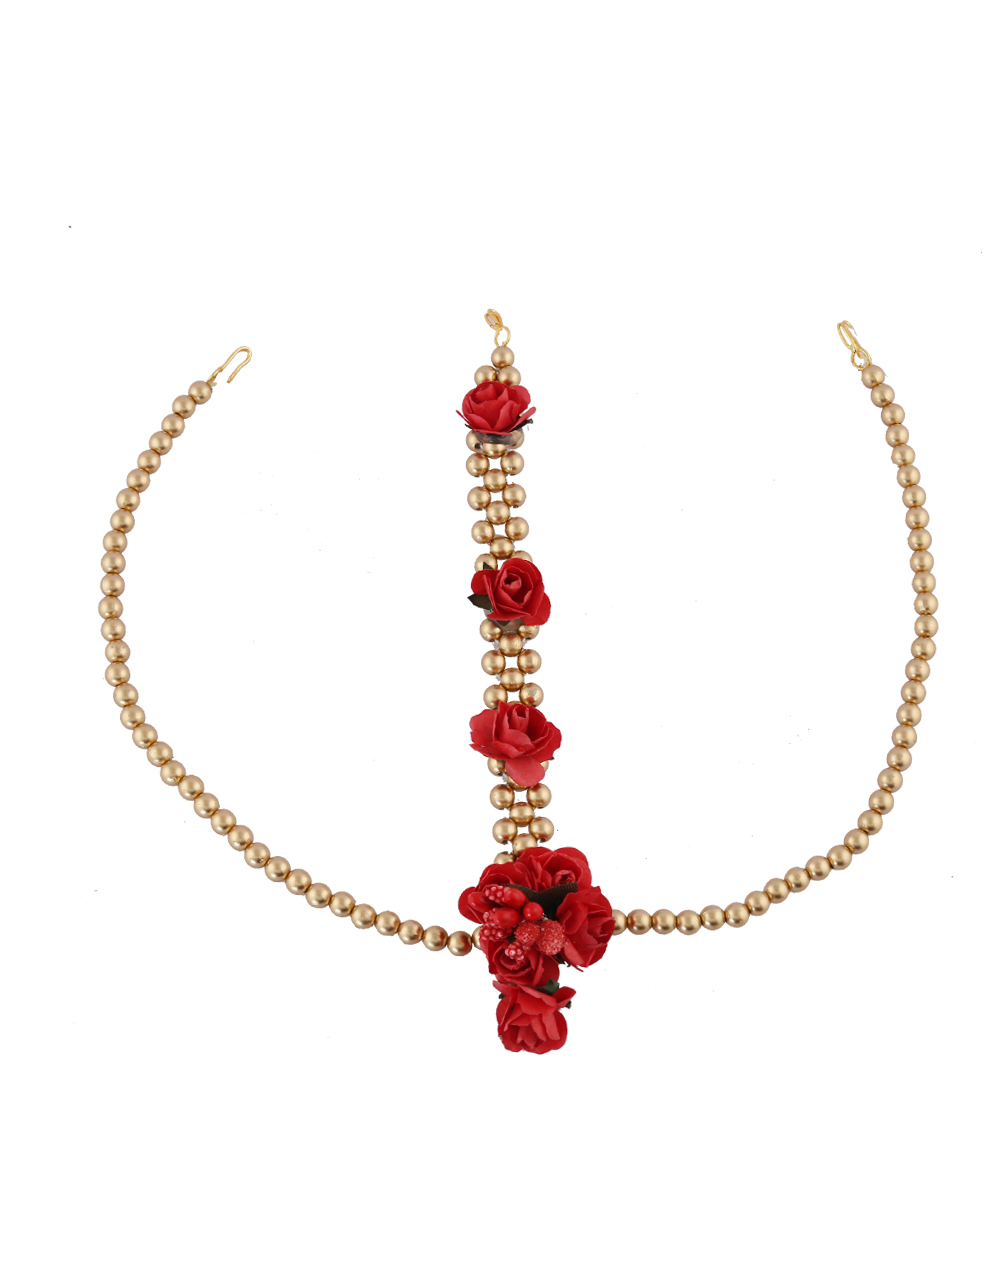 Red Colour Gold Finish Very Classy Flower Jewellery For Wedding